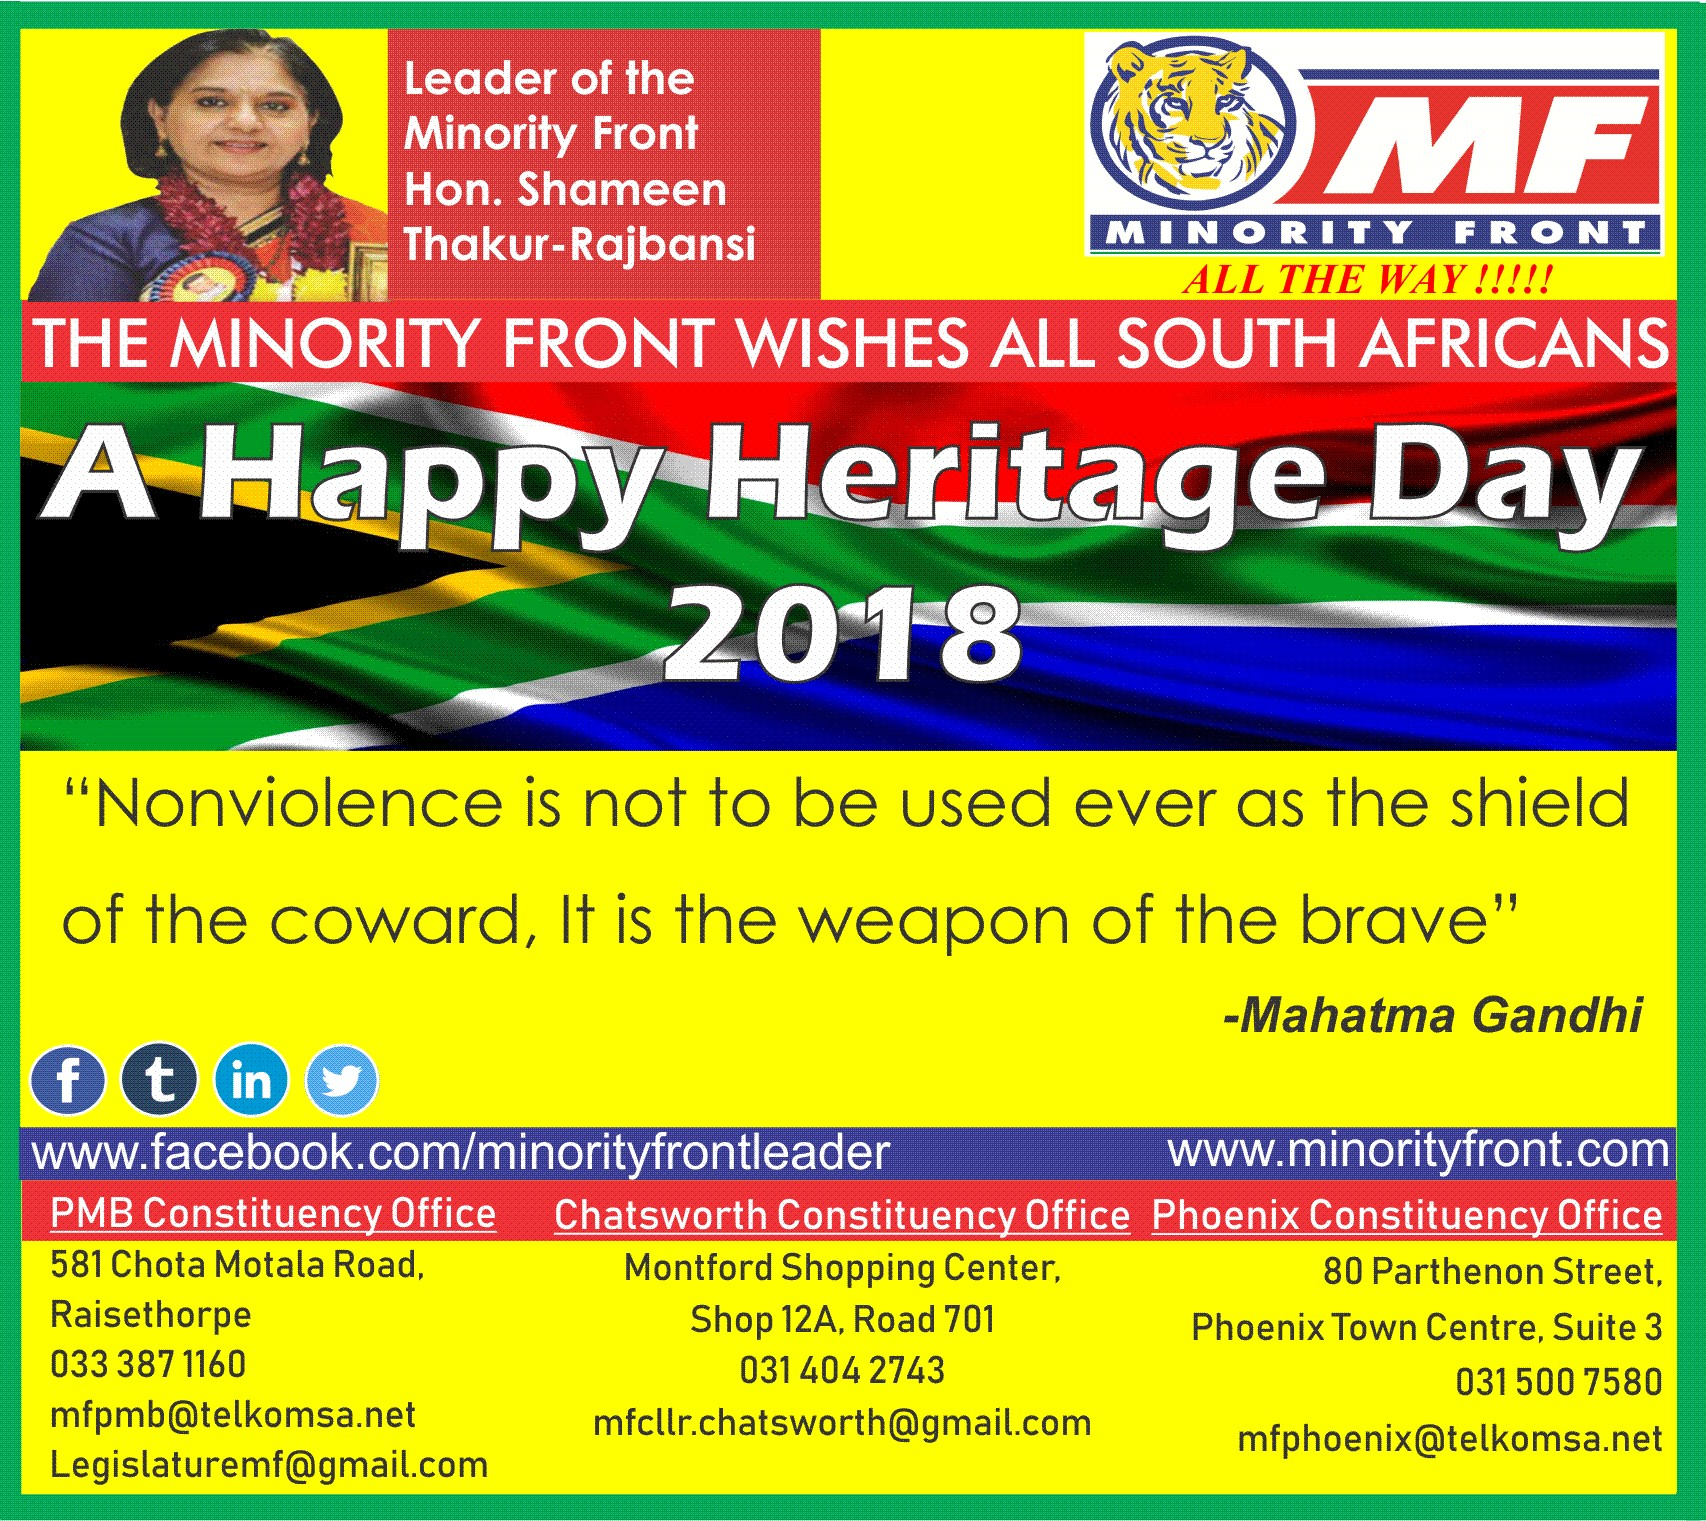 Heritage Day 2018